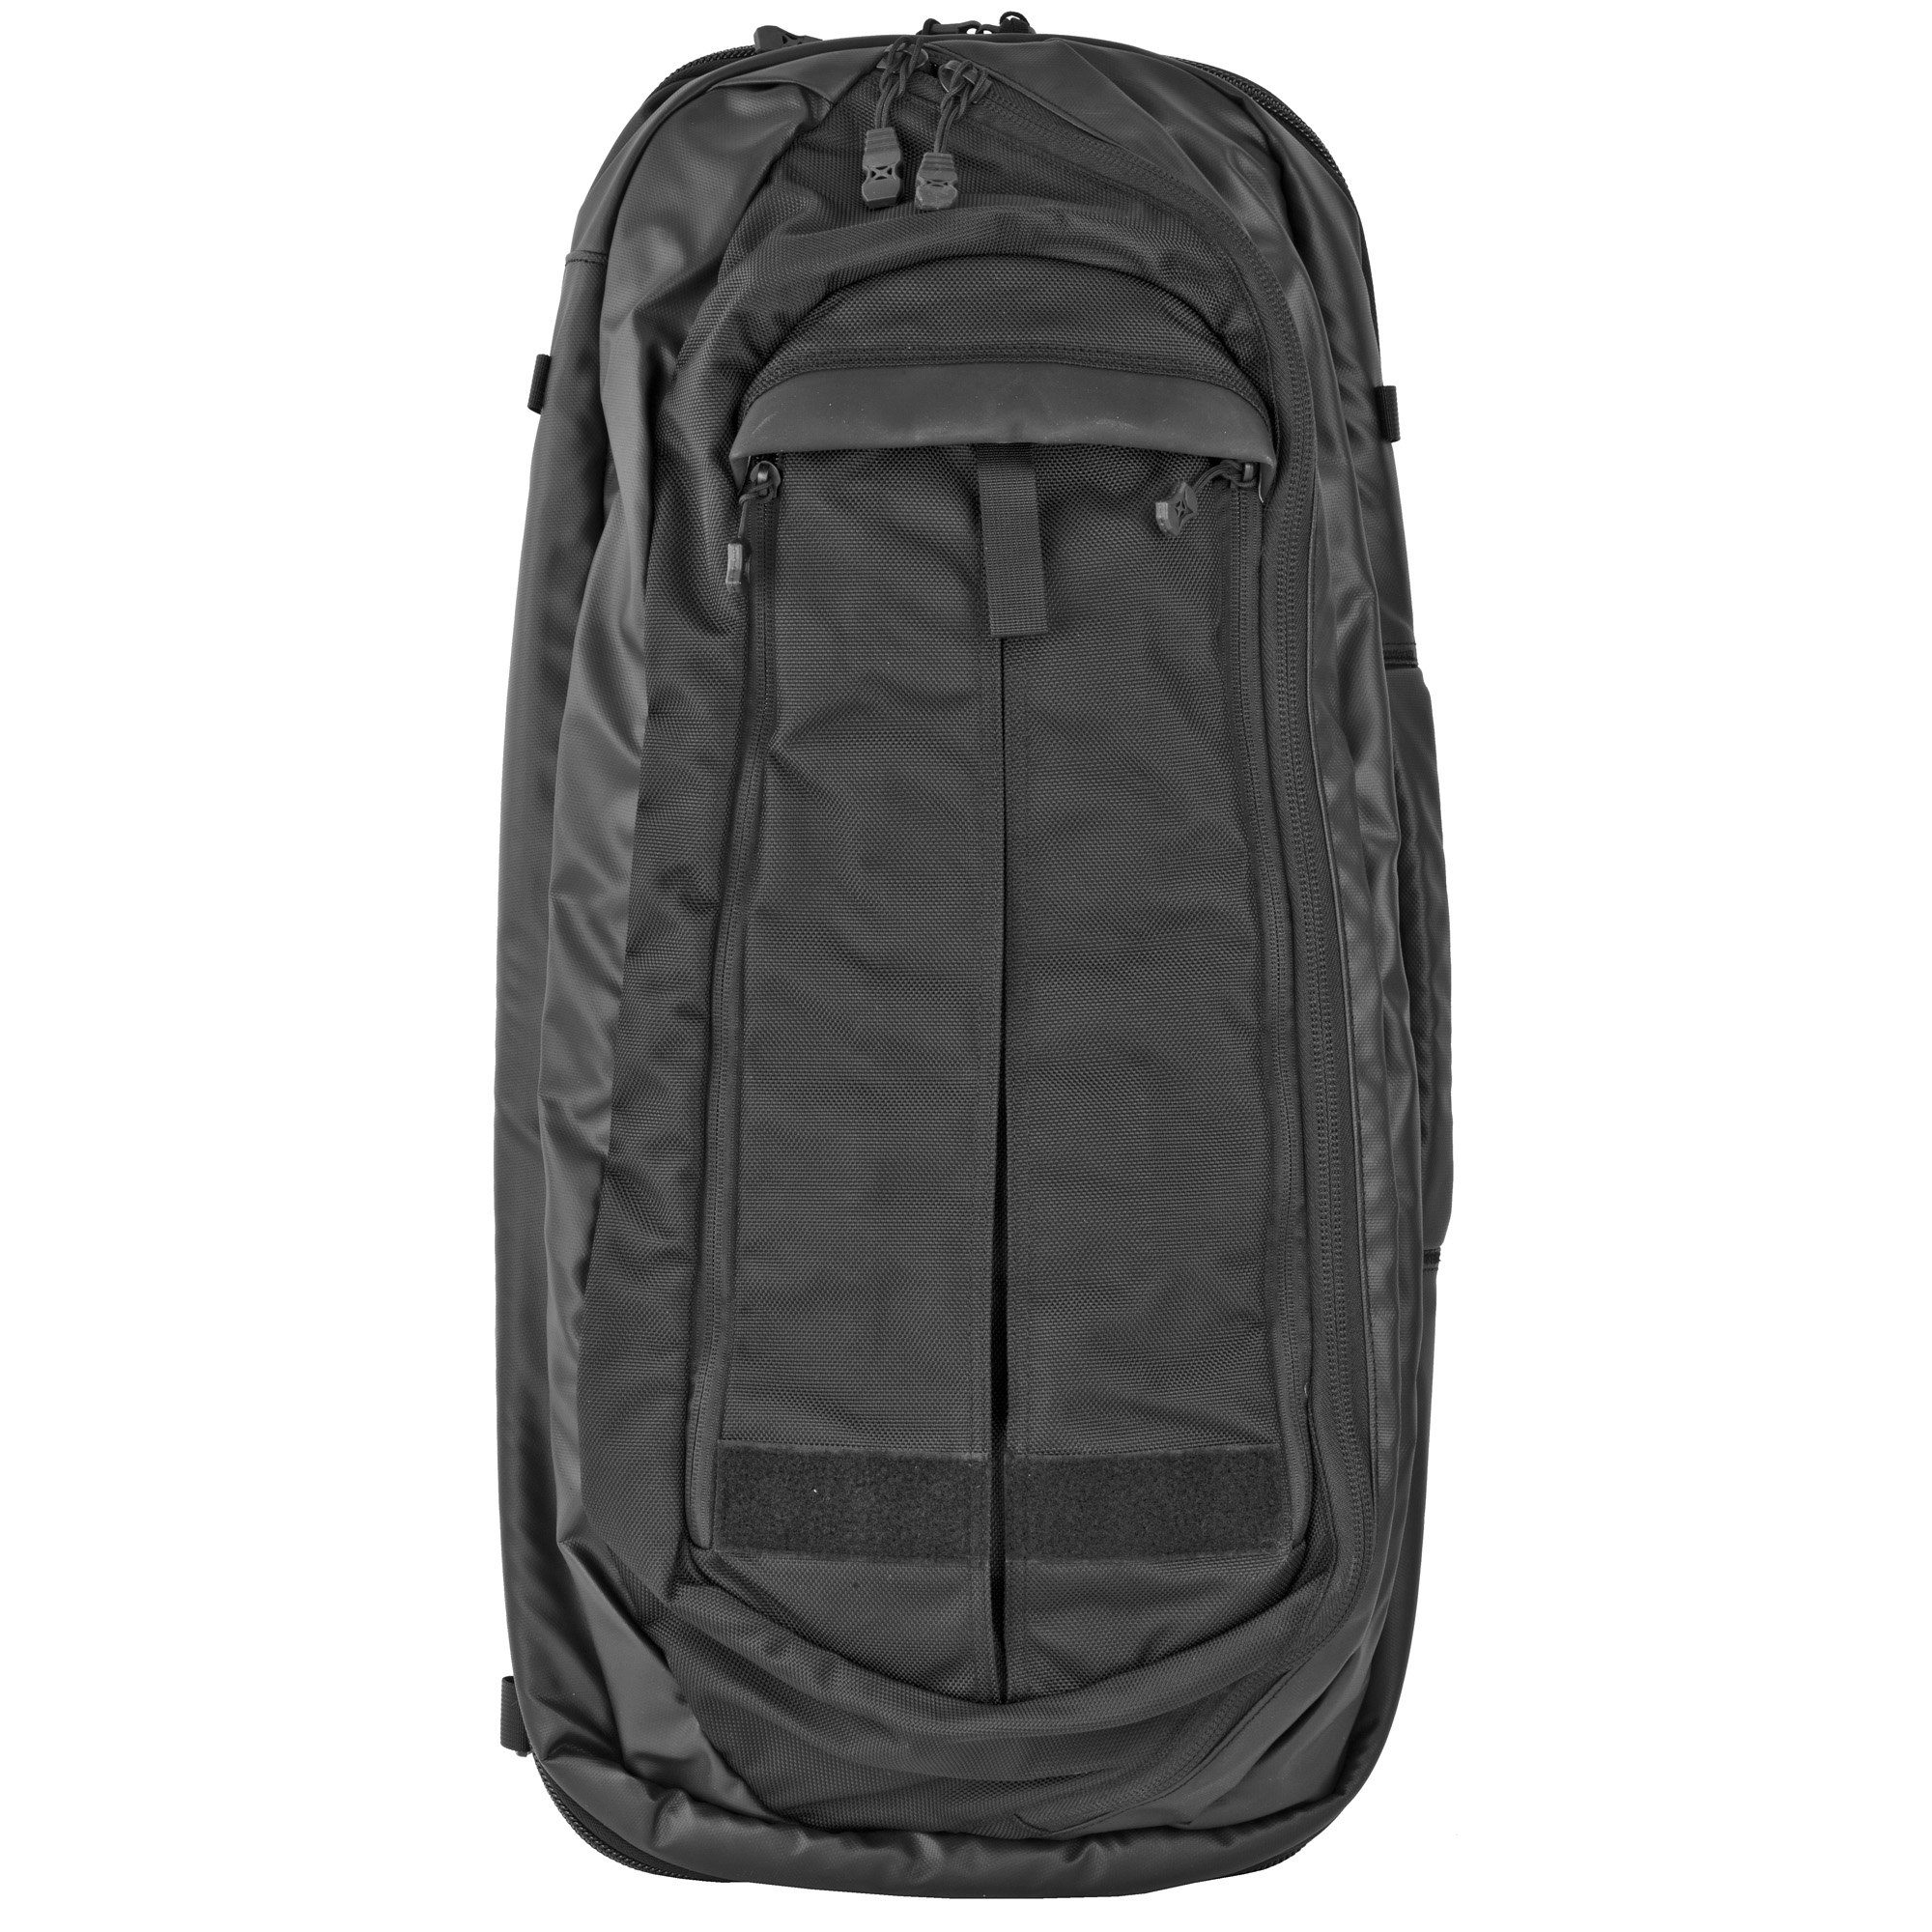 """For those days when you just need a little more space"""" this rifle-compatible sling bag lets you manage unique work and casual loads with adaptable carry options and organization. Rapid access to critical contents partners with secure retention and the ability to quickly adjust the Commuter XL's appearance to ensure optimal discretion and effectiveness."""